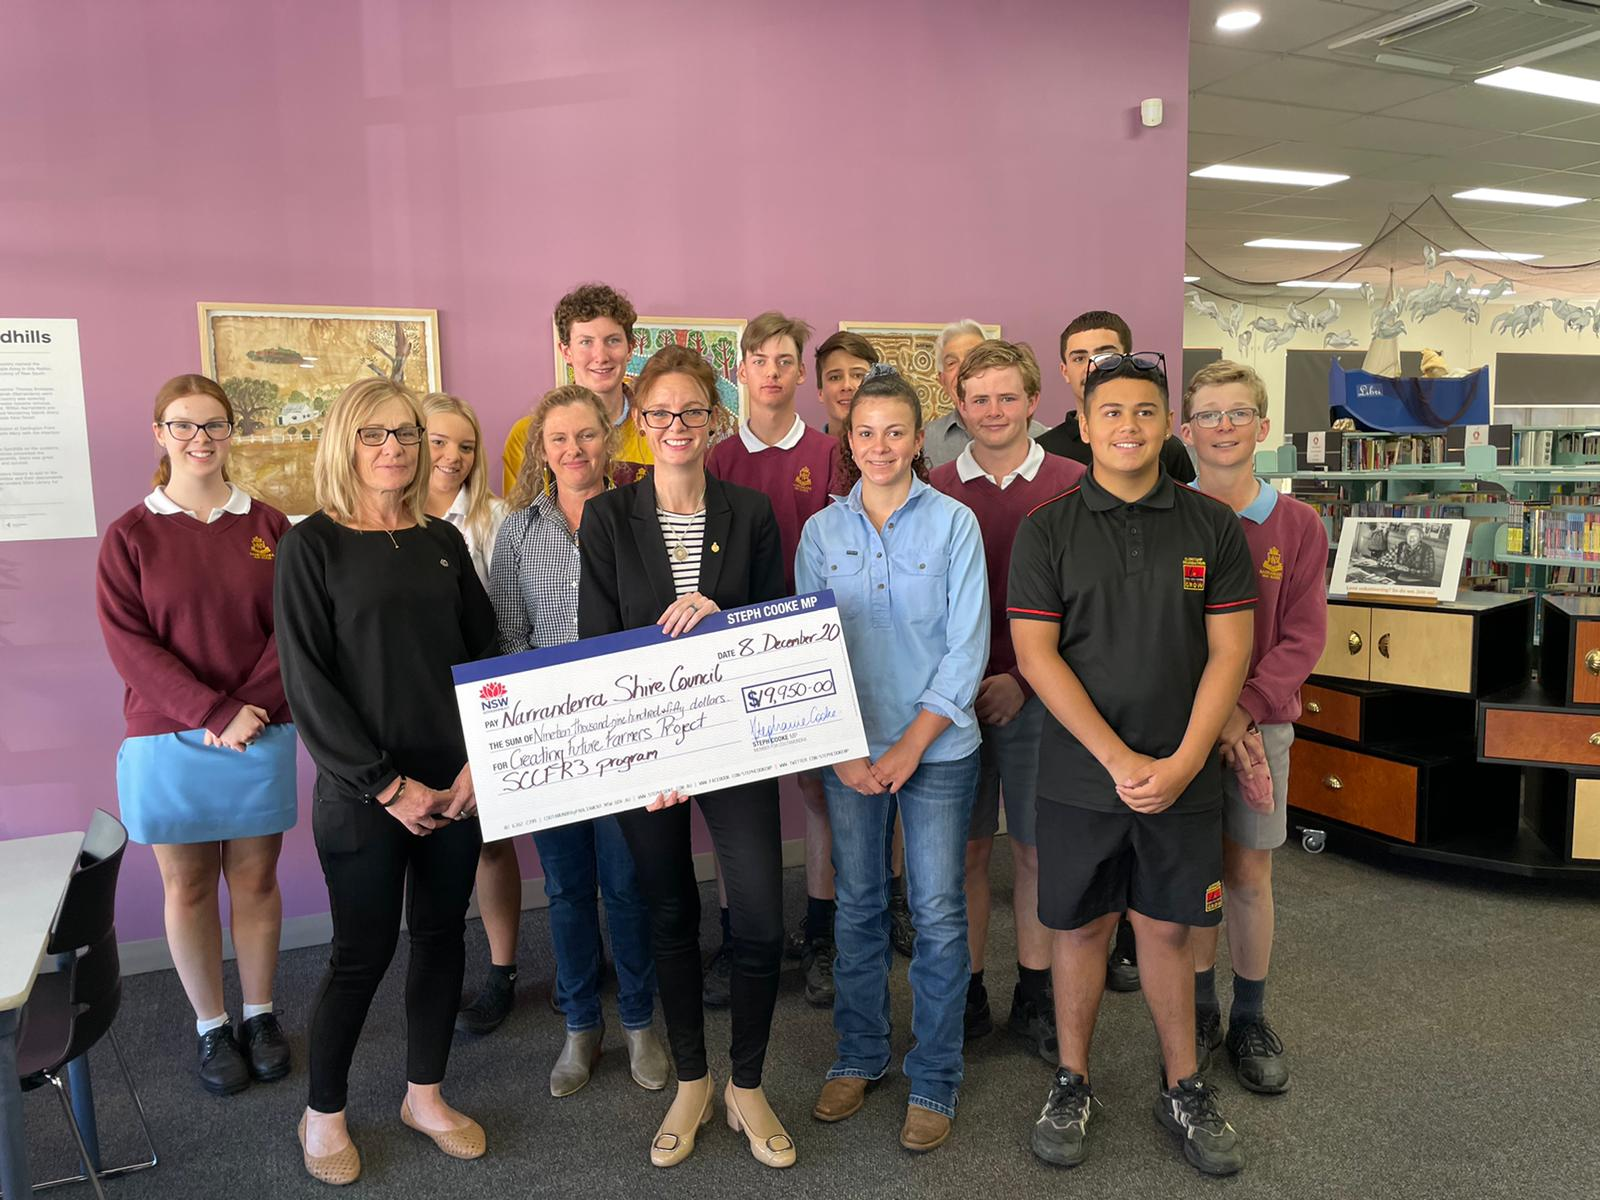 A group of young people stand behind Tammy Galvin and Steph Cooke, who hold a large cheque.